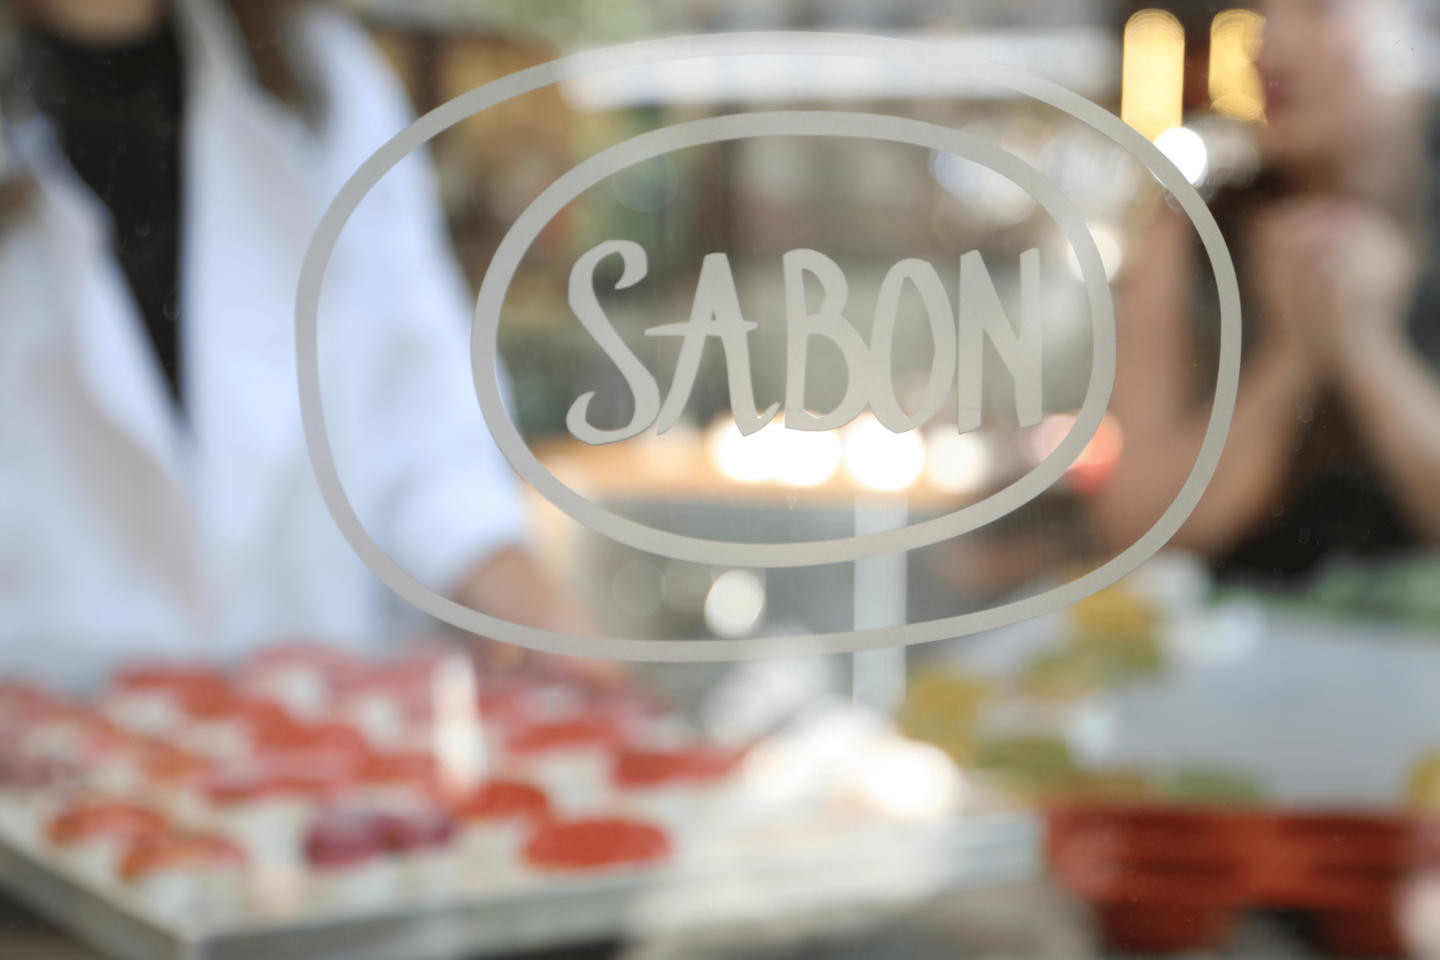 Sabon NYC Soap Lab – Soap-Making Classes and More